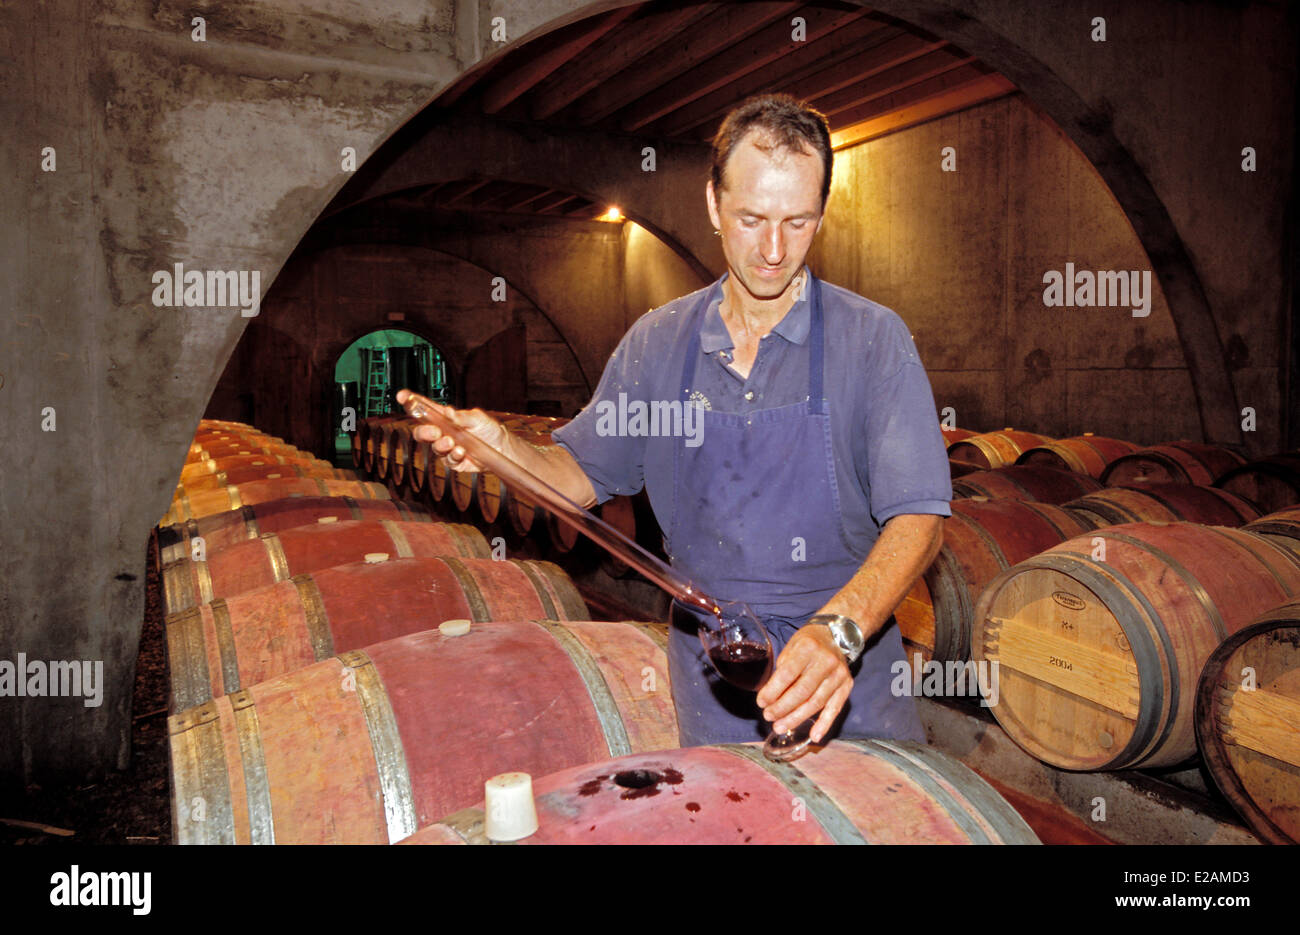 France, Pyrenees Atlantiques, Saint Jean Pied de Port, Domaine Brana Wine domain producing, Jean Brana in his wine - Stock Image